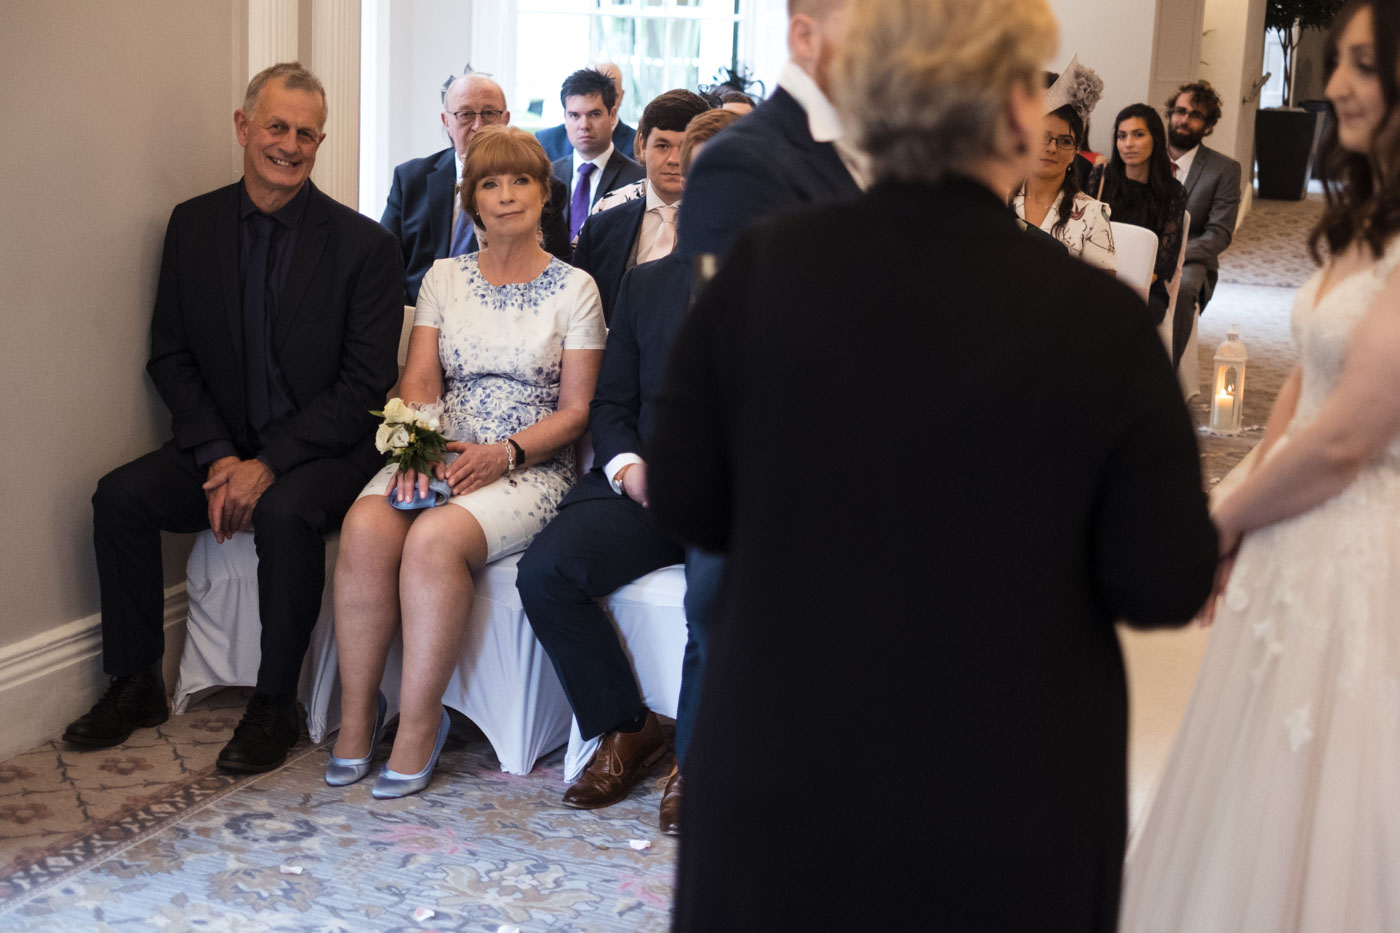 guests watching the wedding